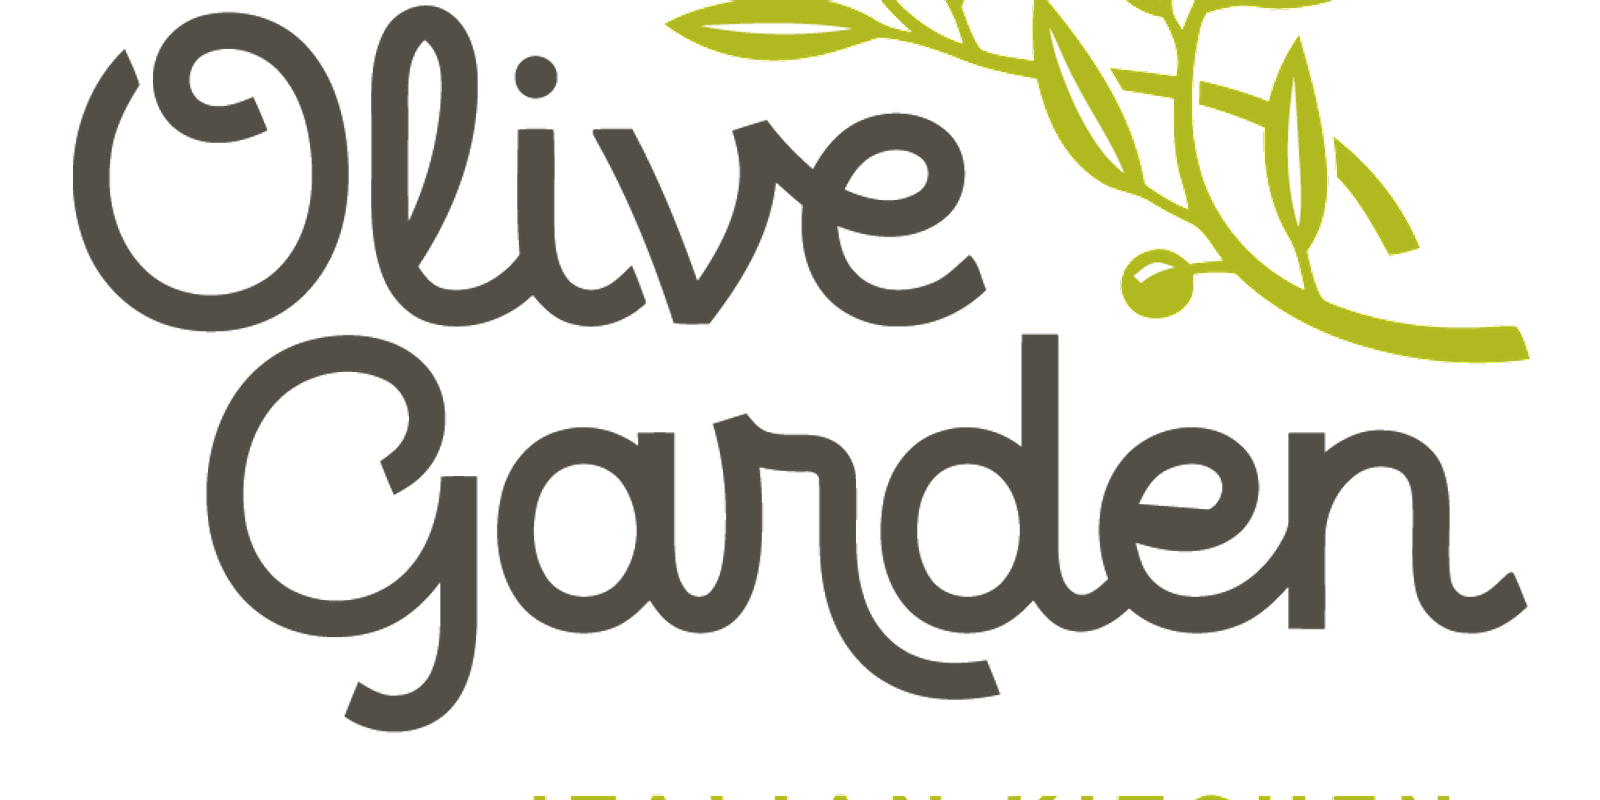 Olive garden png. Spirit night at to